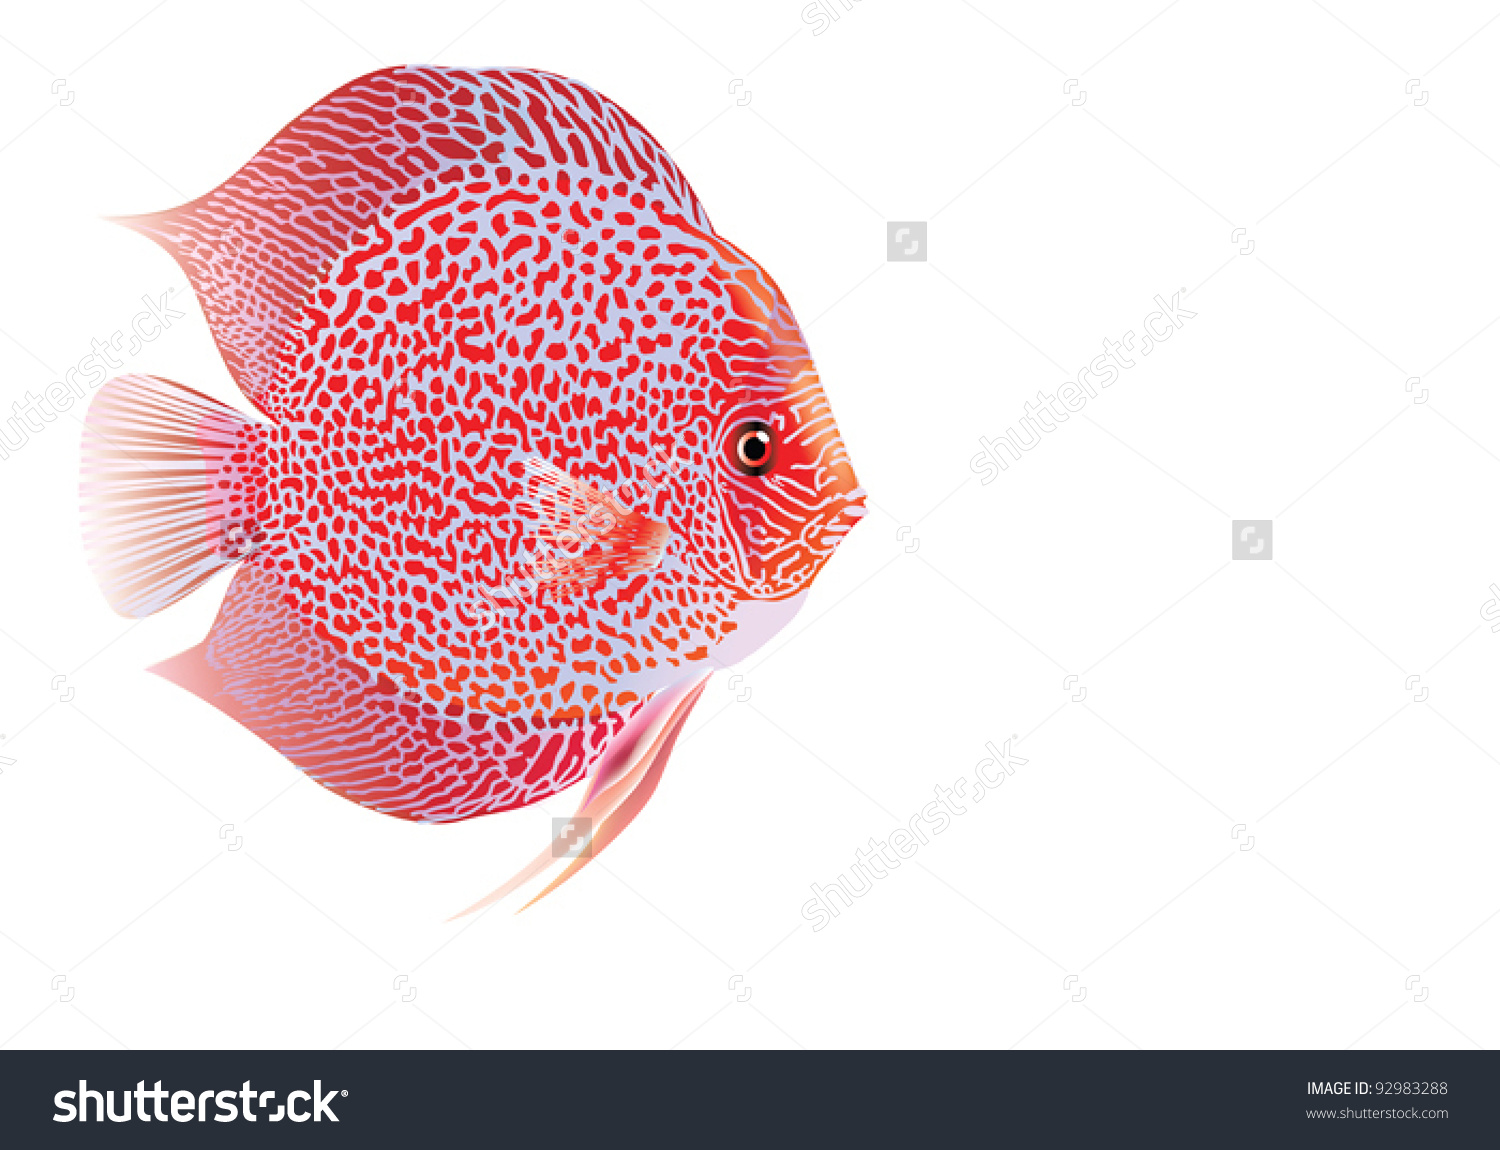 Discus Fish clipart #14, Download drawings